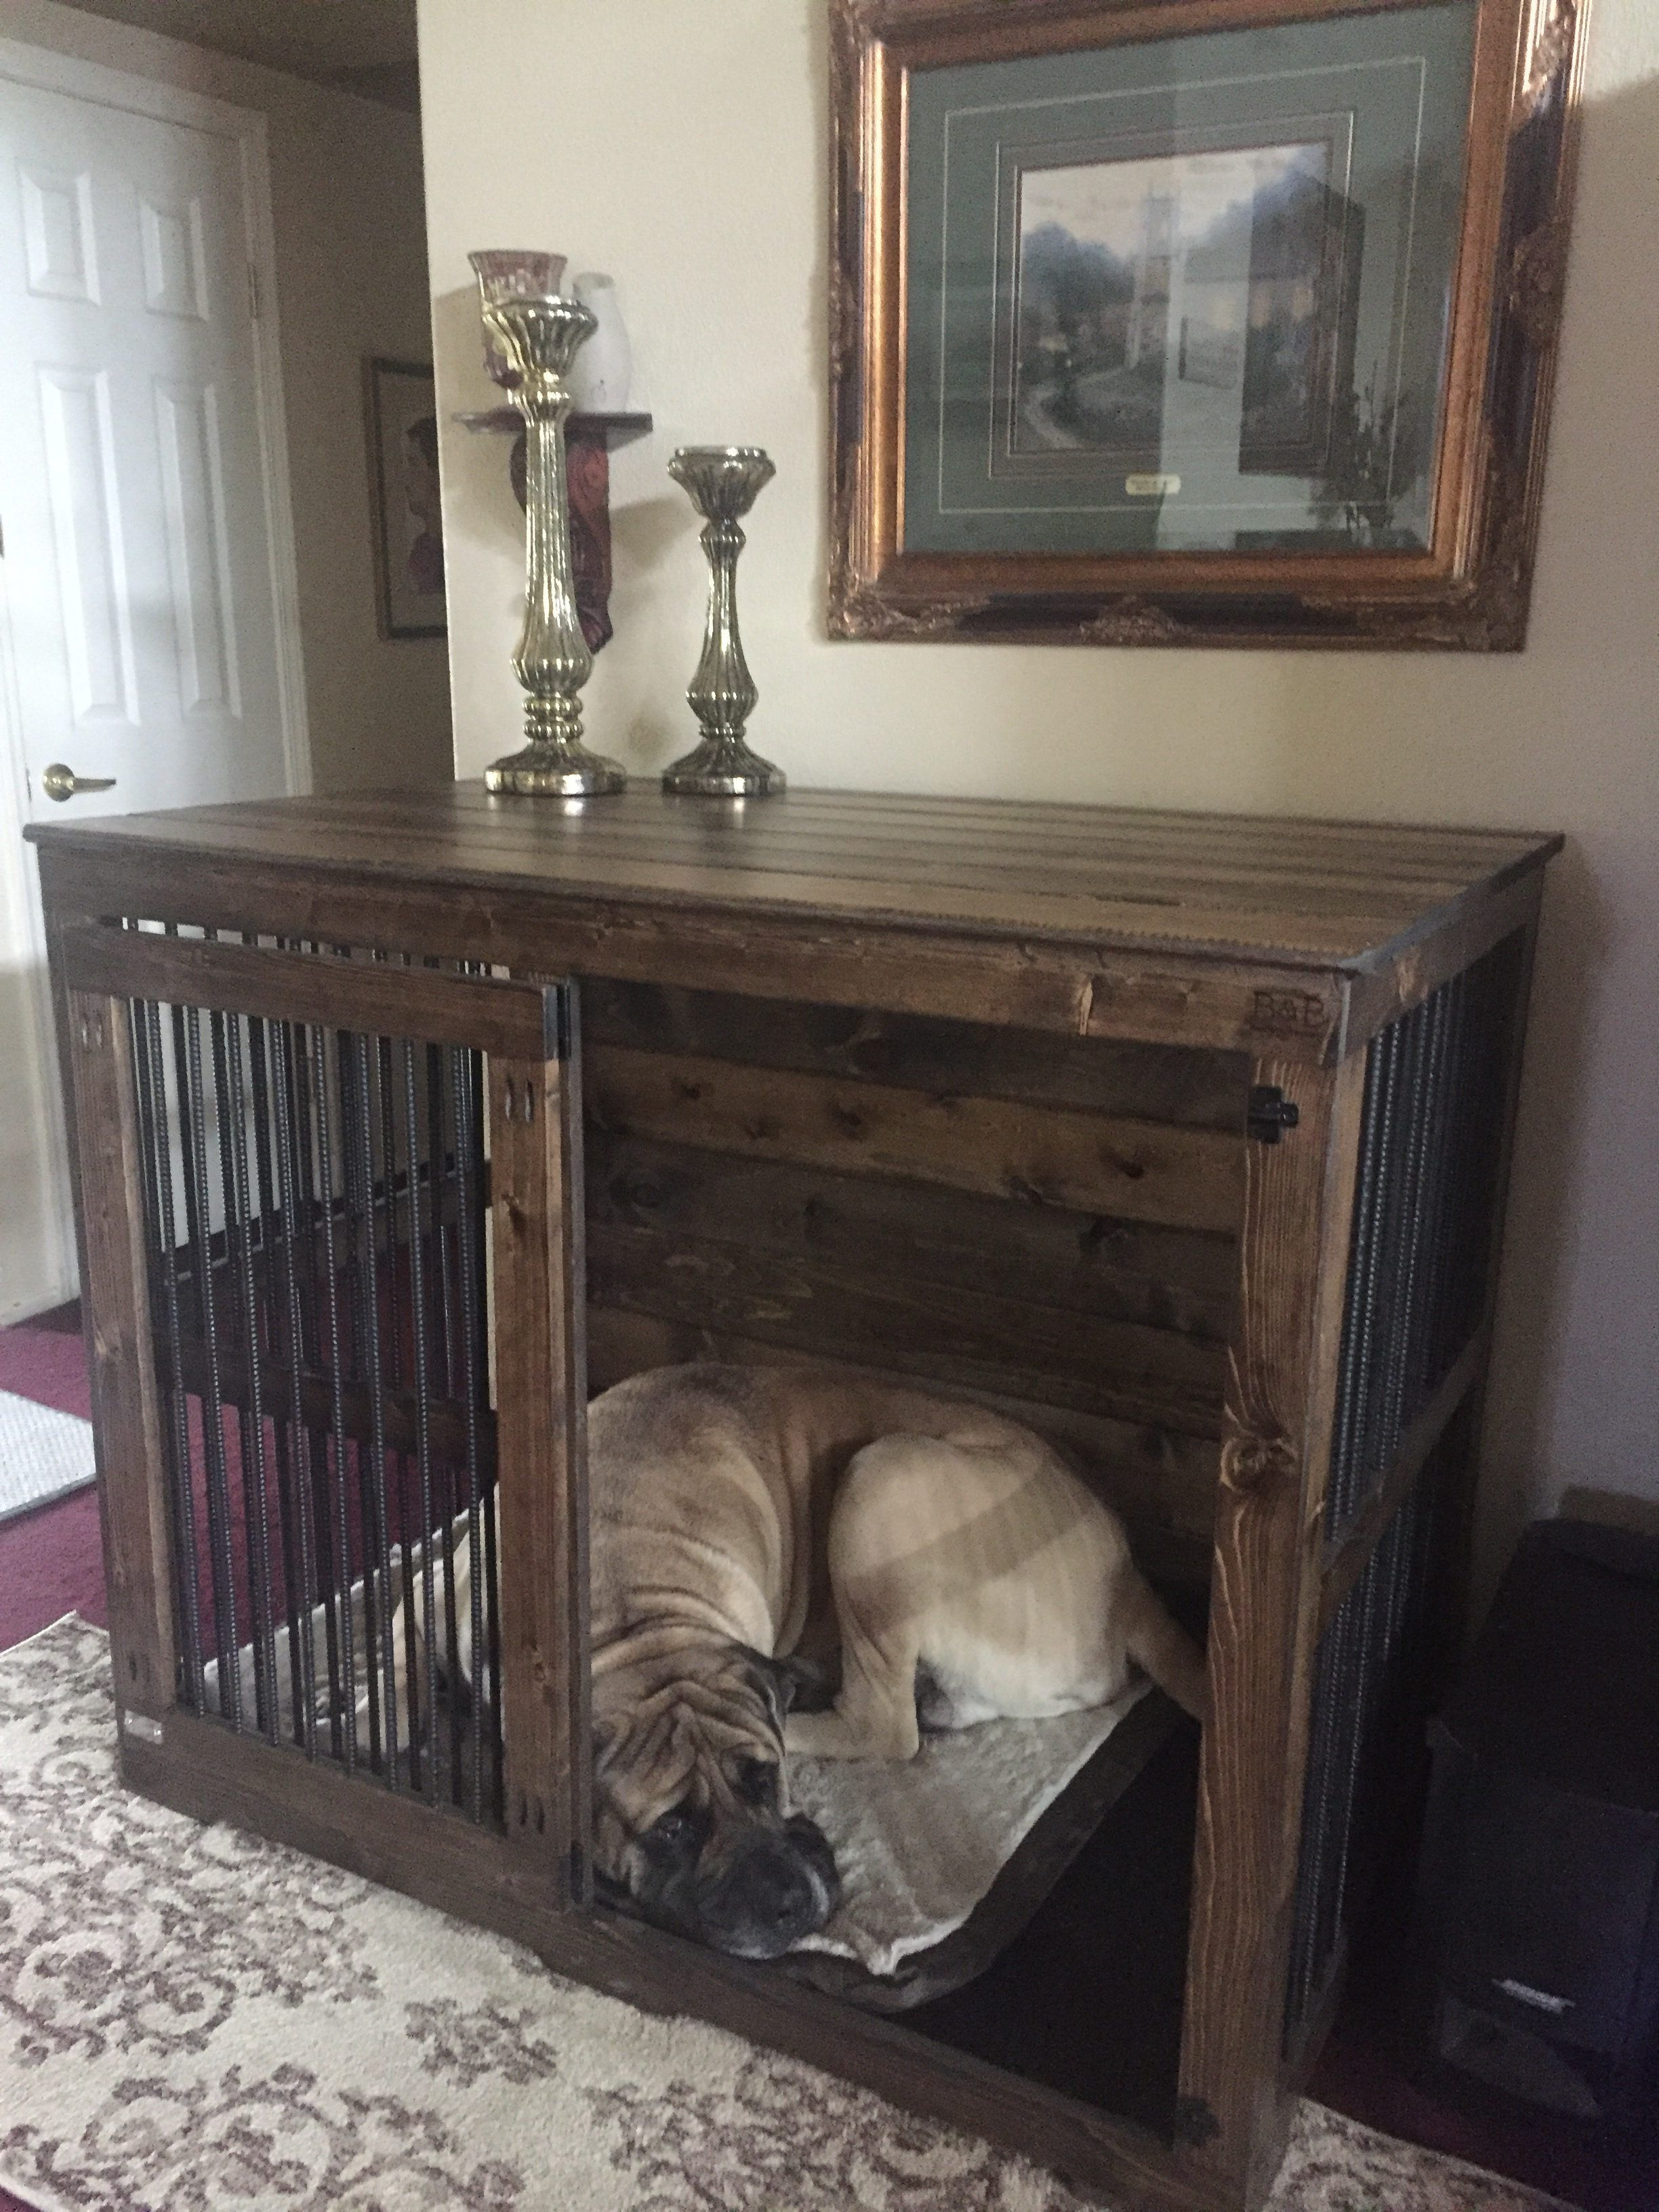 The Best Custom Great Dane Dog Kennels For Indoor Use